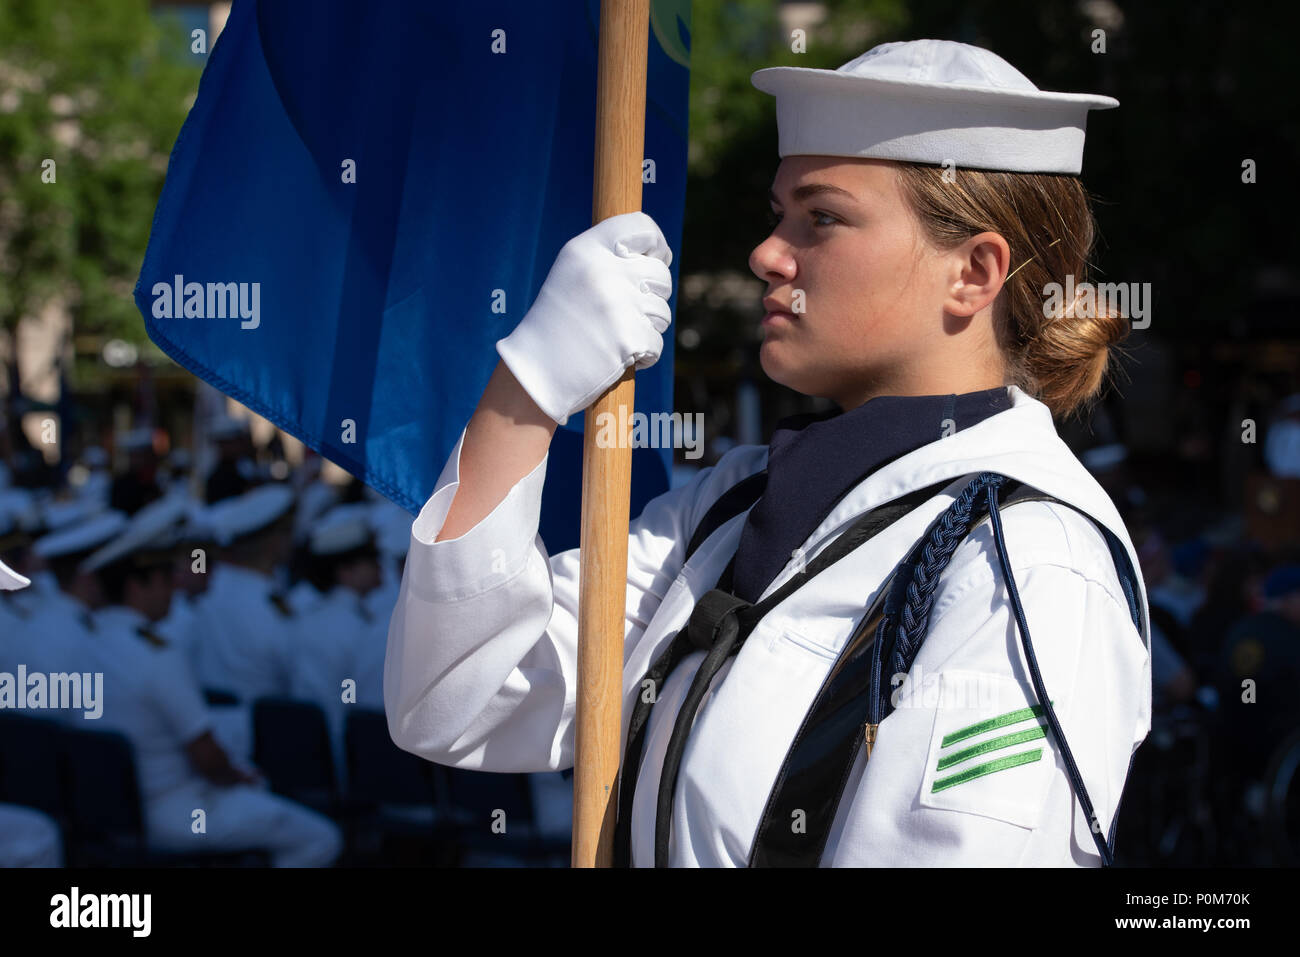 180605-N-HG258-1068 WASHINGTON (June 5, 2018) Members of the U.S. Navy Ceremonial guard march onto the U.S. Navy Memorial in Washington, D.C., during the commemoration of the 76th anniversary of the Battle of Midway. The Battle of Midway began on June 4 in 1942 and stands as one of the U.S. Navy's most historically significant naval battles. Fought on the high seas of the Pacific more than half a century ago, this battle altered the course of the war in the Pacific and thereby shaped the outcome of world events. (U.S. Navy photo by Senior Chief Musician Stephen Hassay/Released) - Stock Image